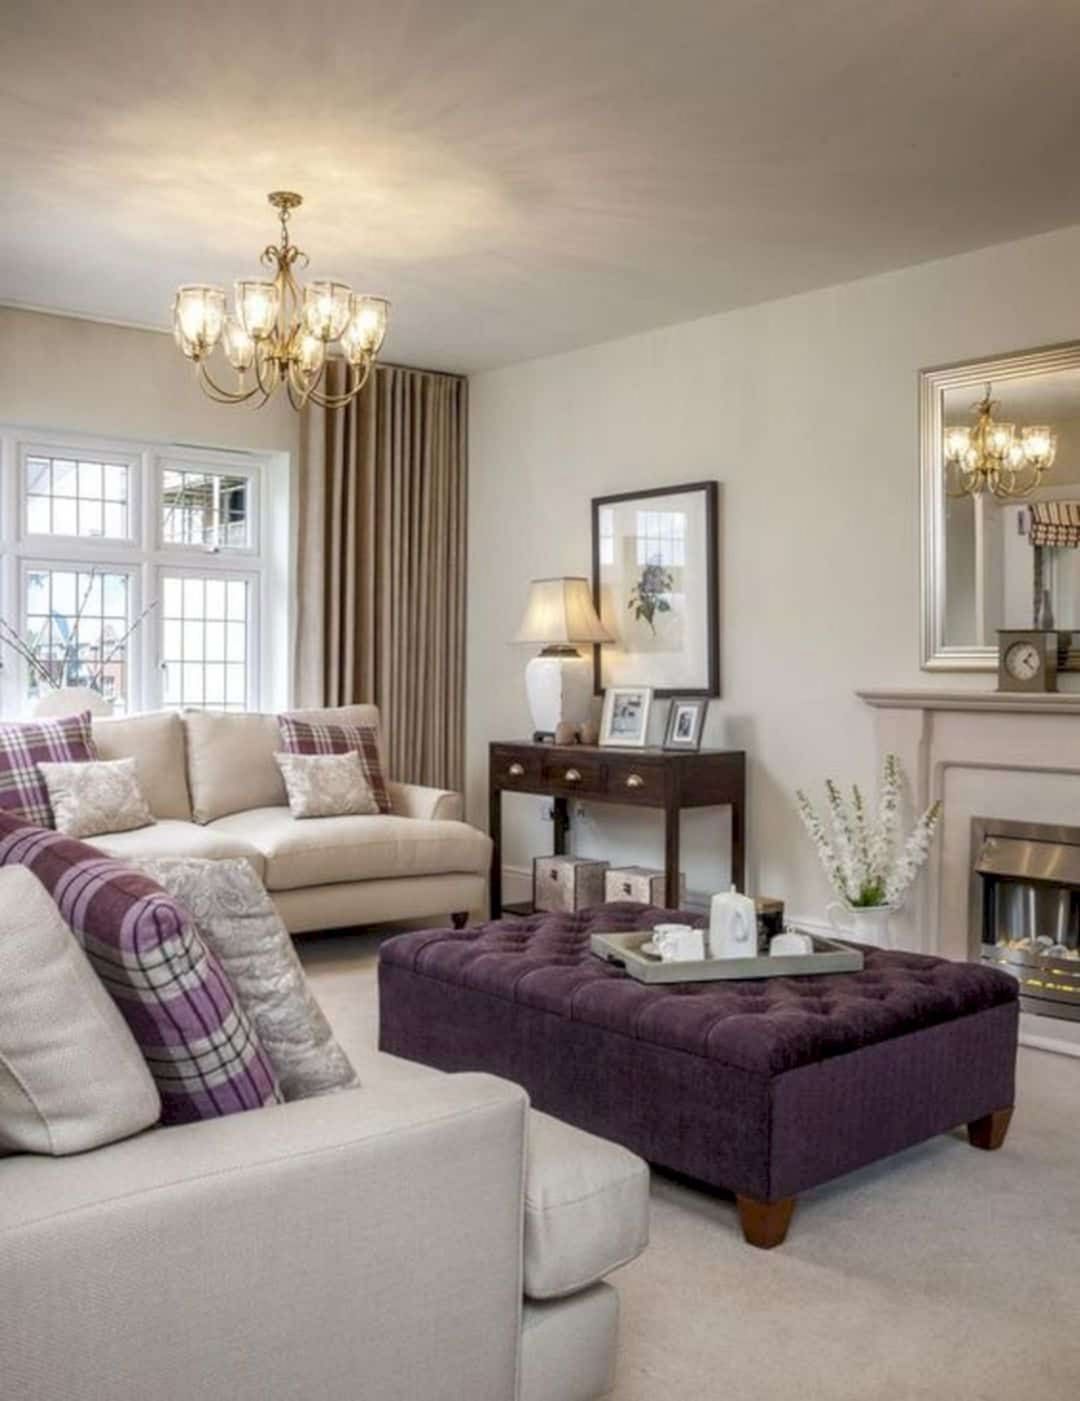 15 Awesome Living Room Green And Purple Interior Color Ideas Silver Living Room Purple Living Room Living Room Color Schemes